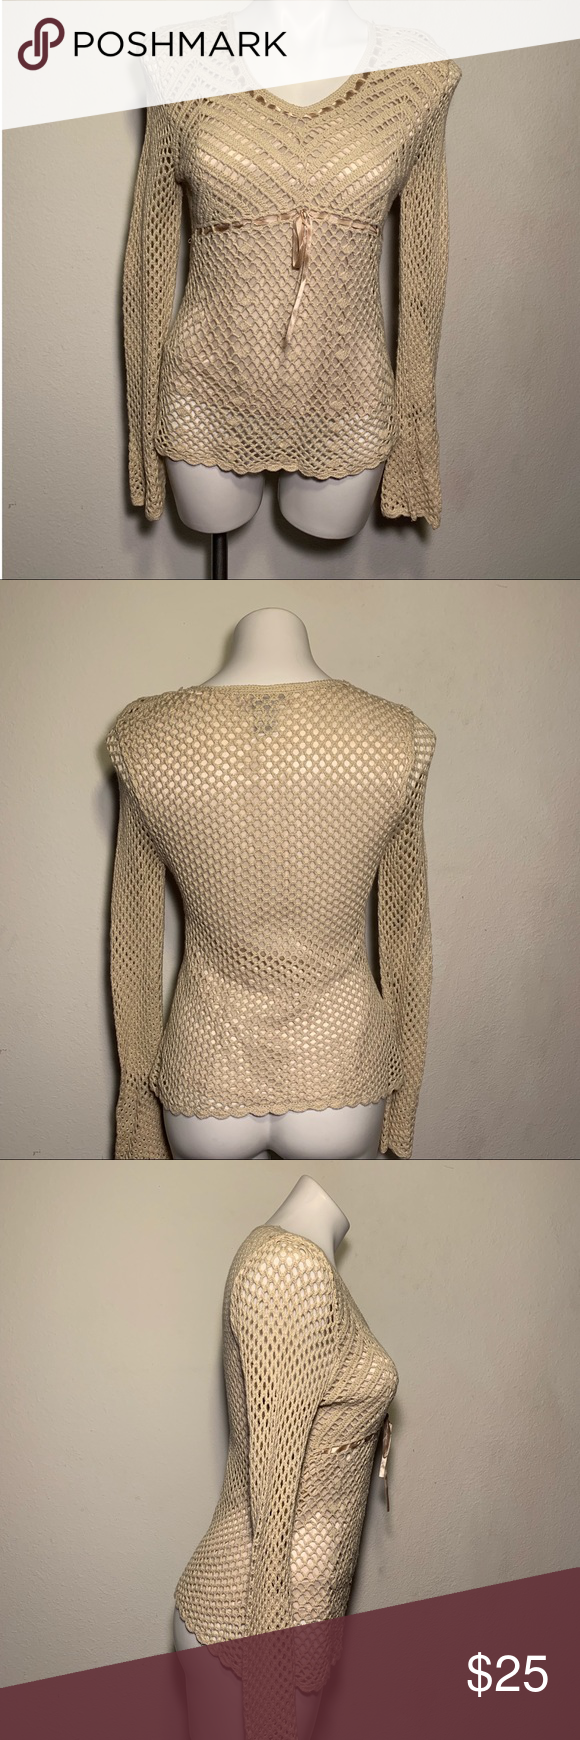 Women S Light Knitted Sweater Size L Clothes Design Feeling